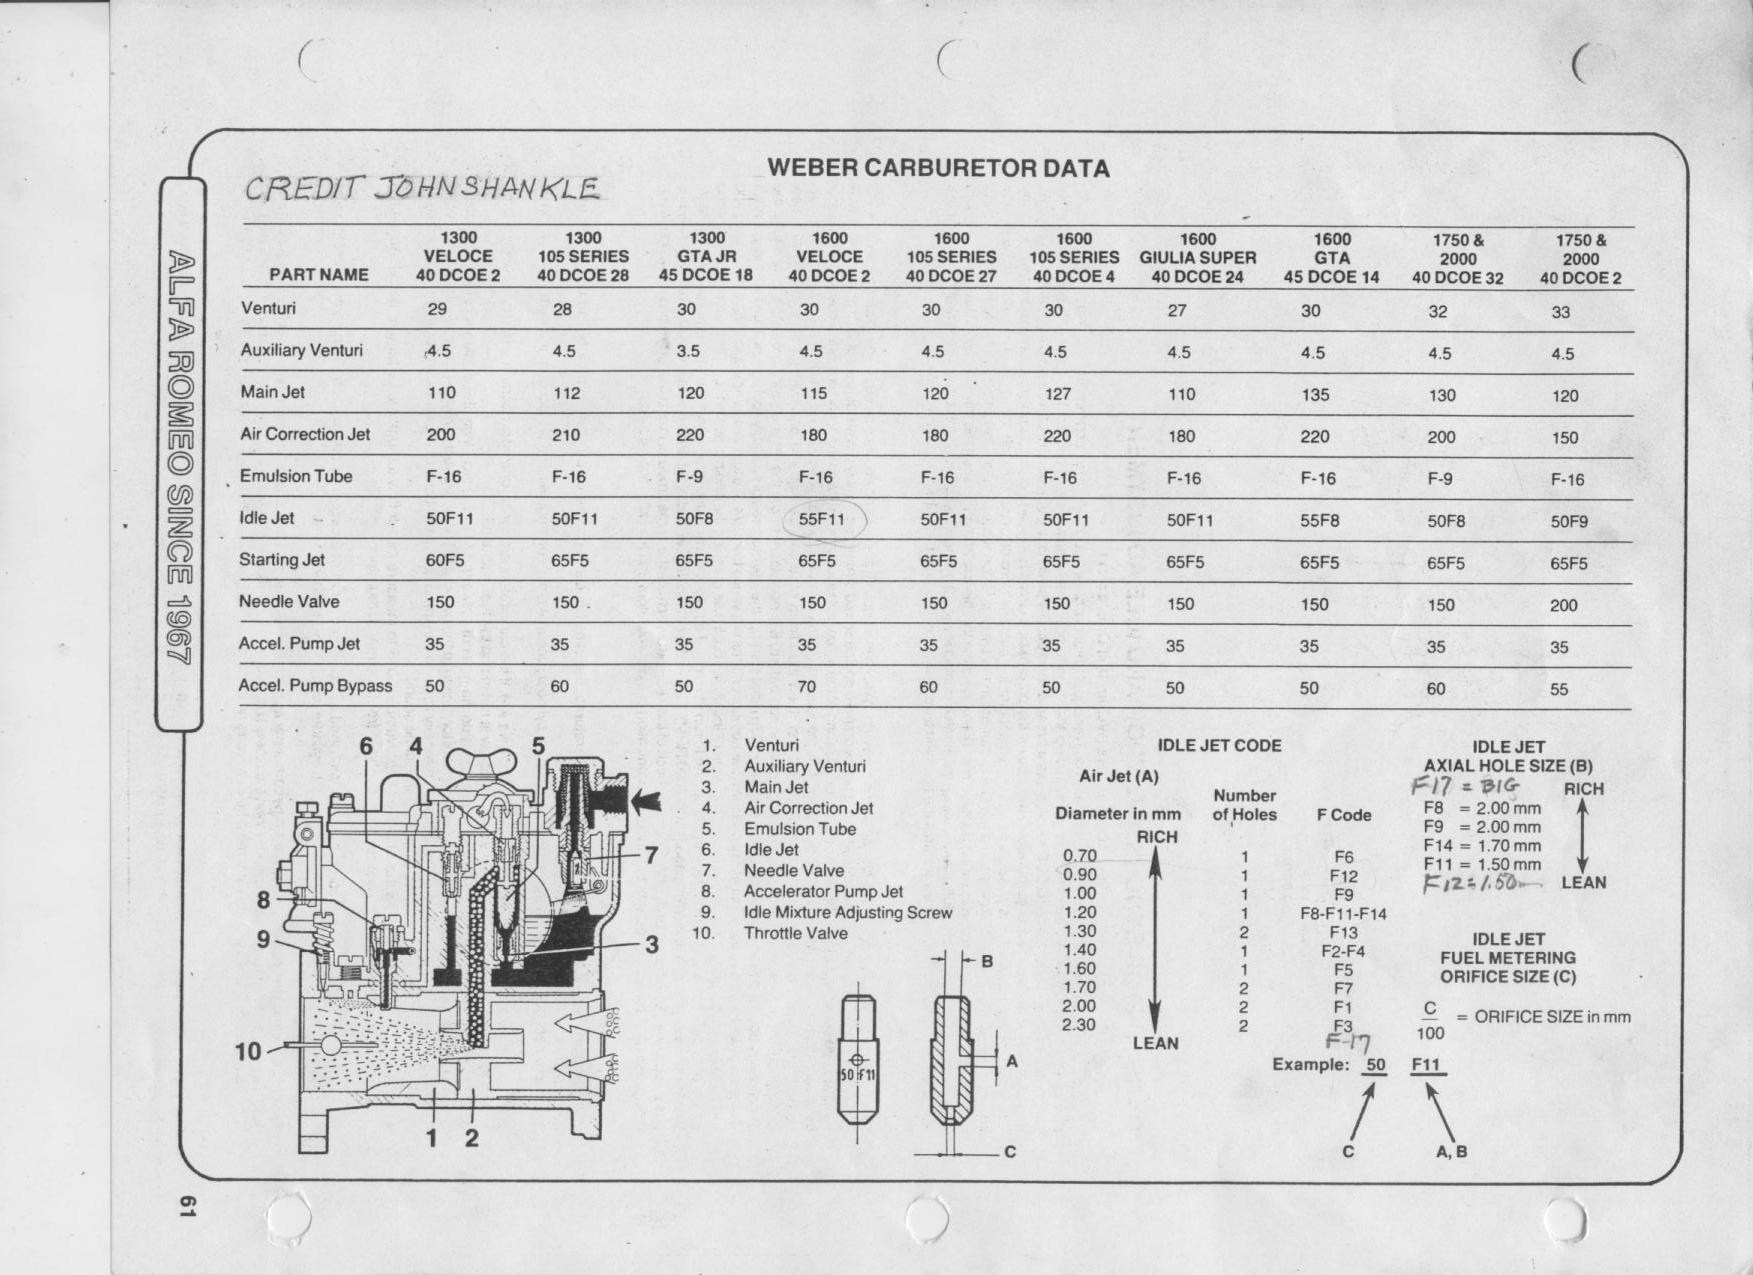 Weber Carburetor Jet Chart http://www.paulspruell.com/engine_instructions.html